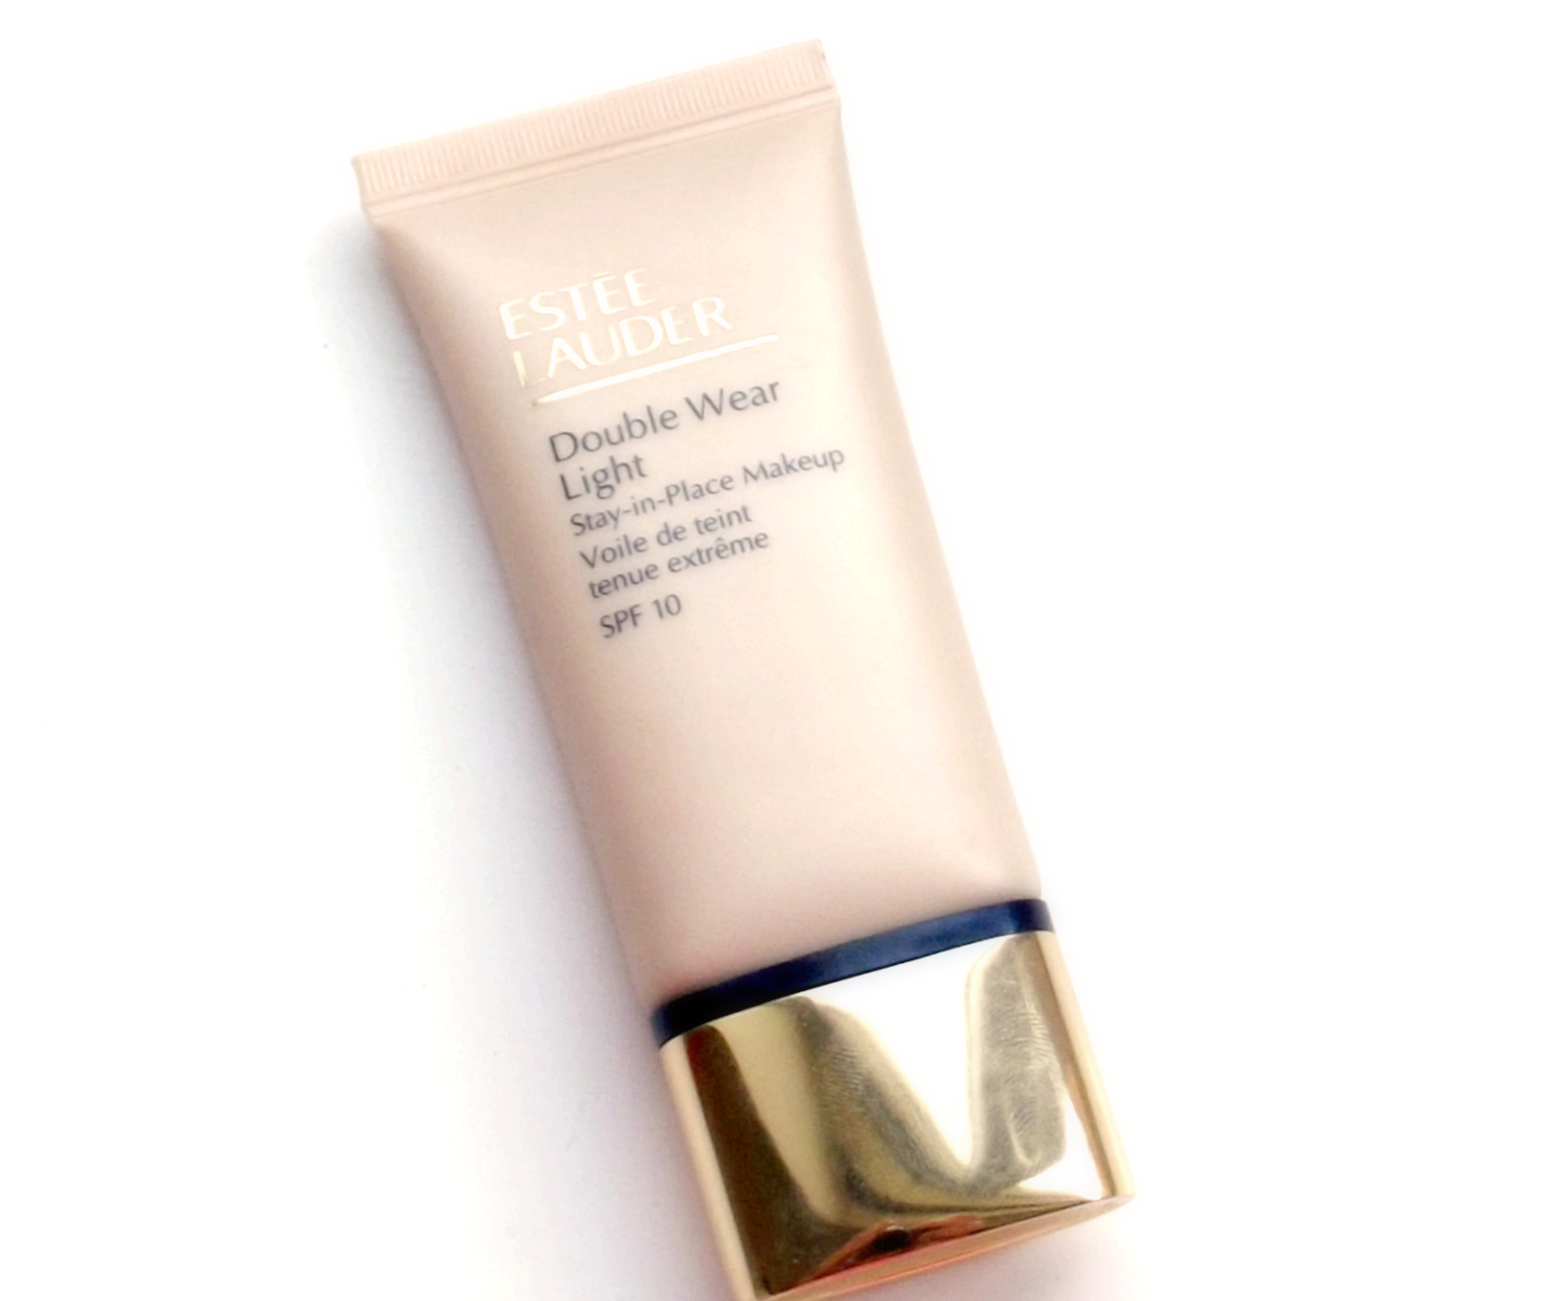 Estée Lauder Double Wear Light foundation